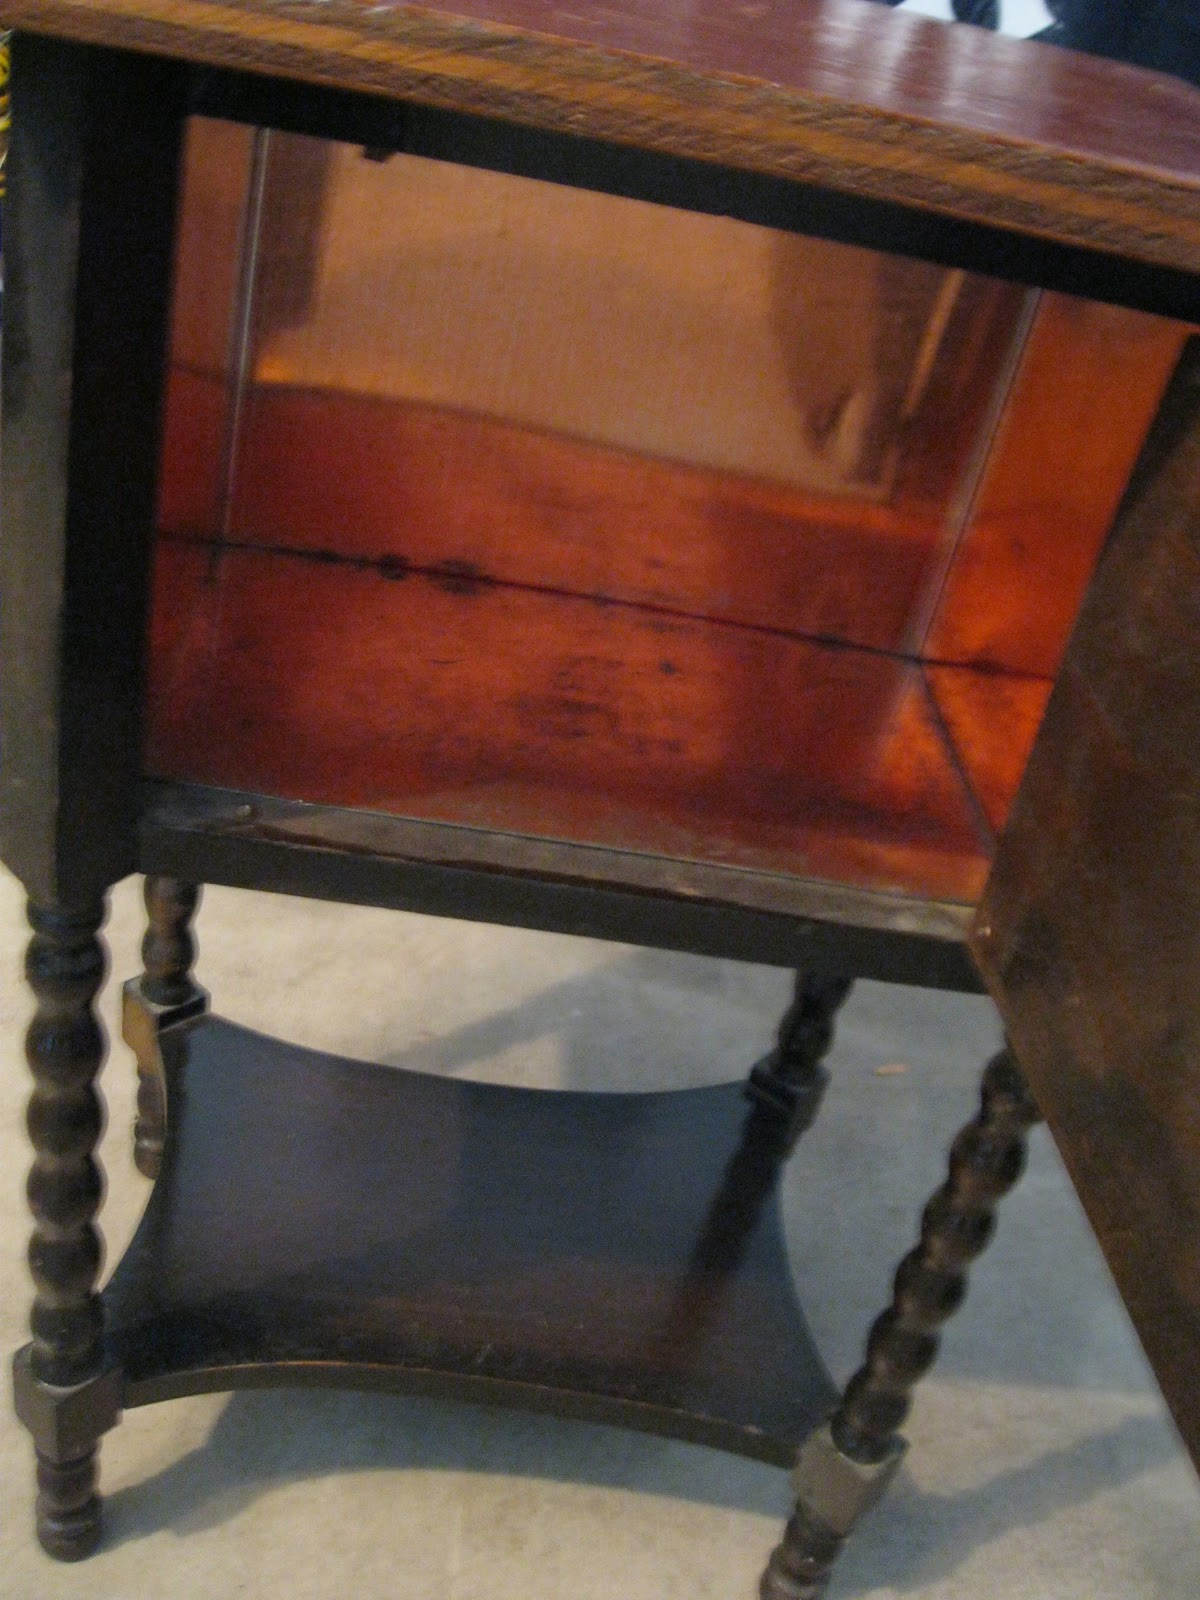 I cleaned the copper and primed the wood: - Pandora's Box: Vintage Humidor